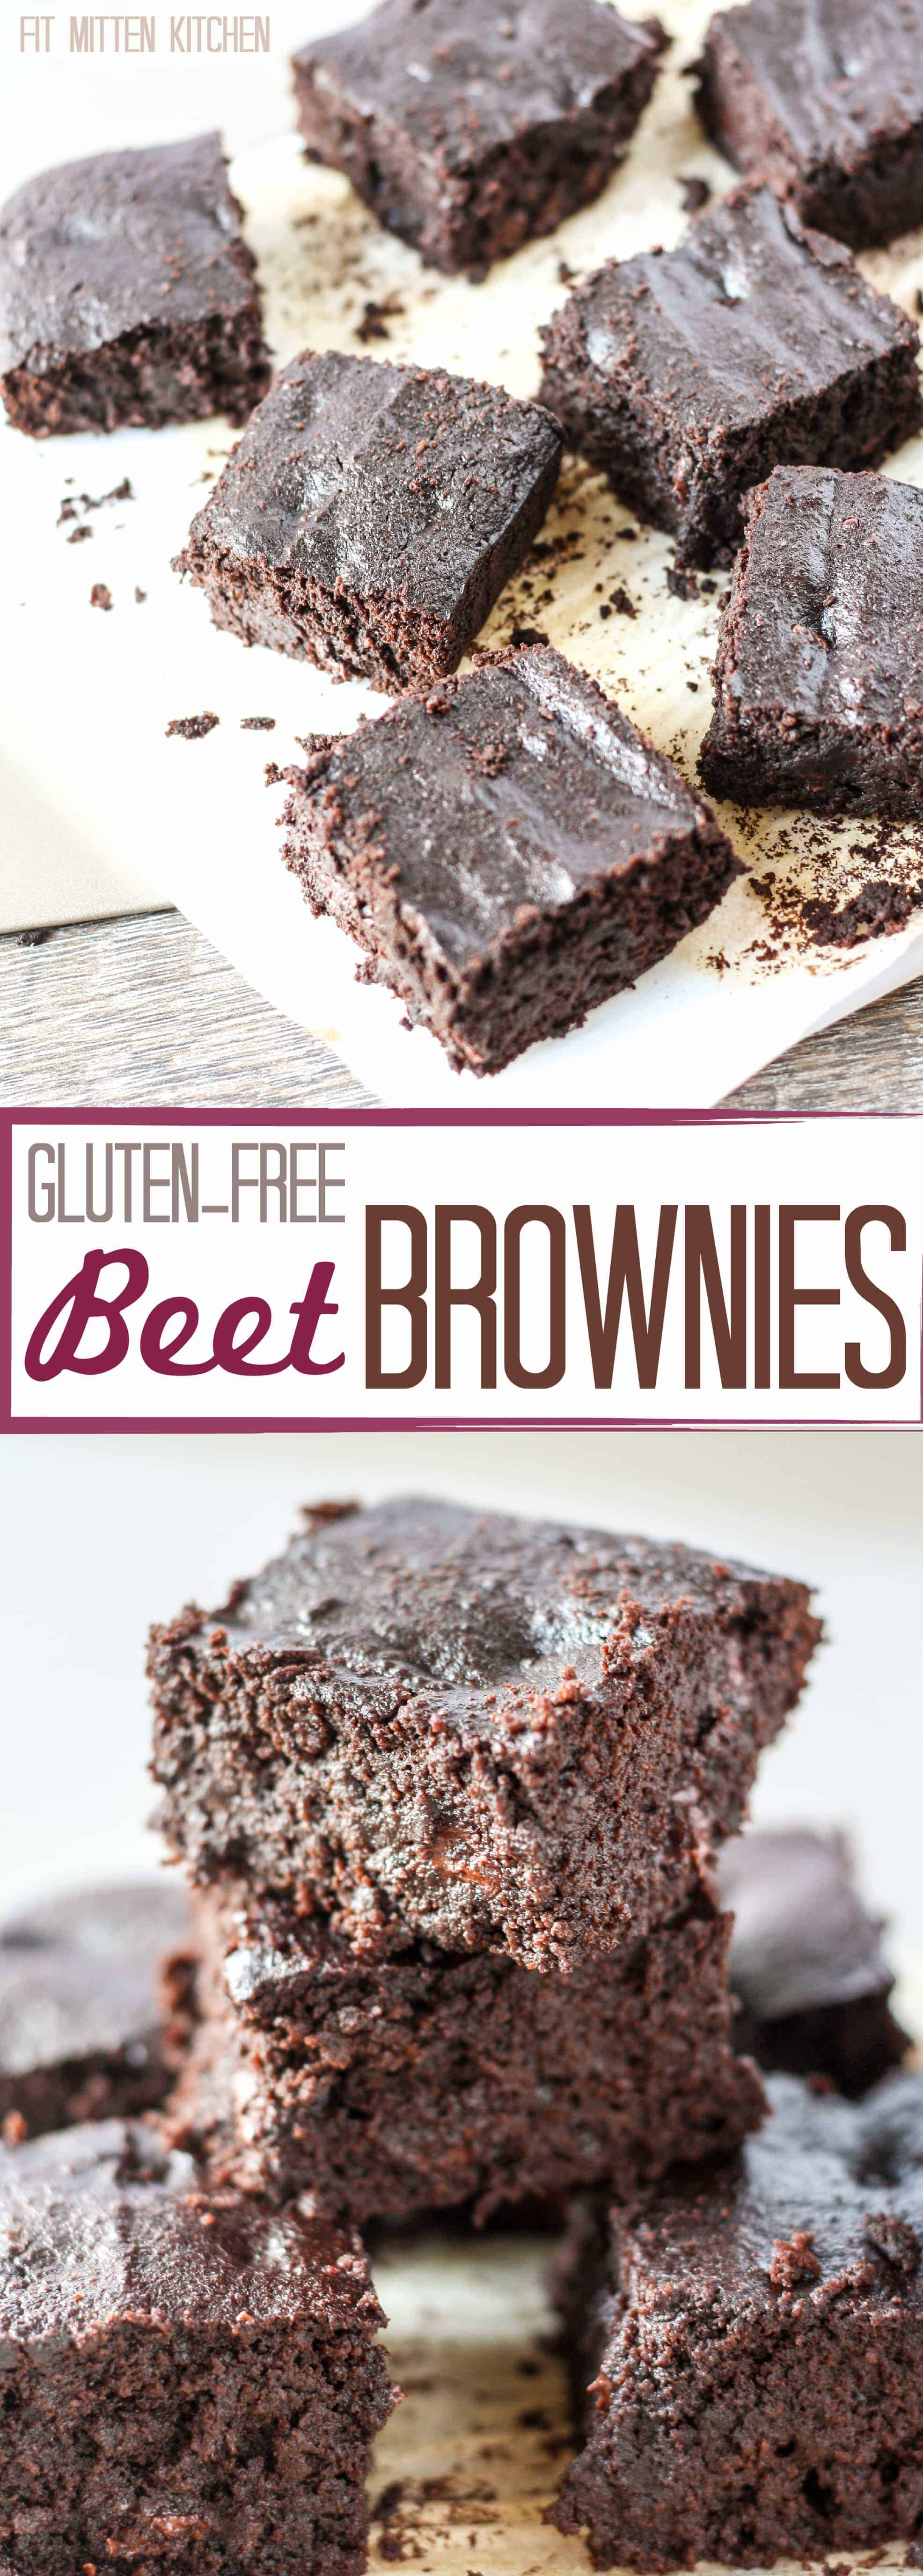 Gluten-Free Beet Brownies on white plate and close up